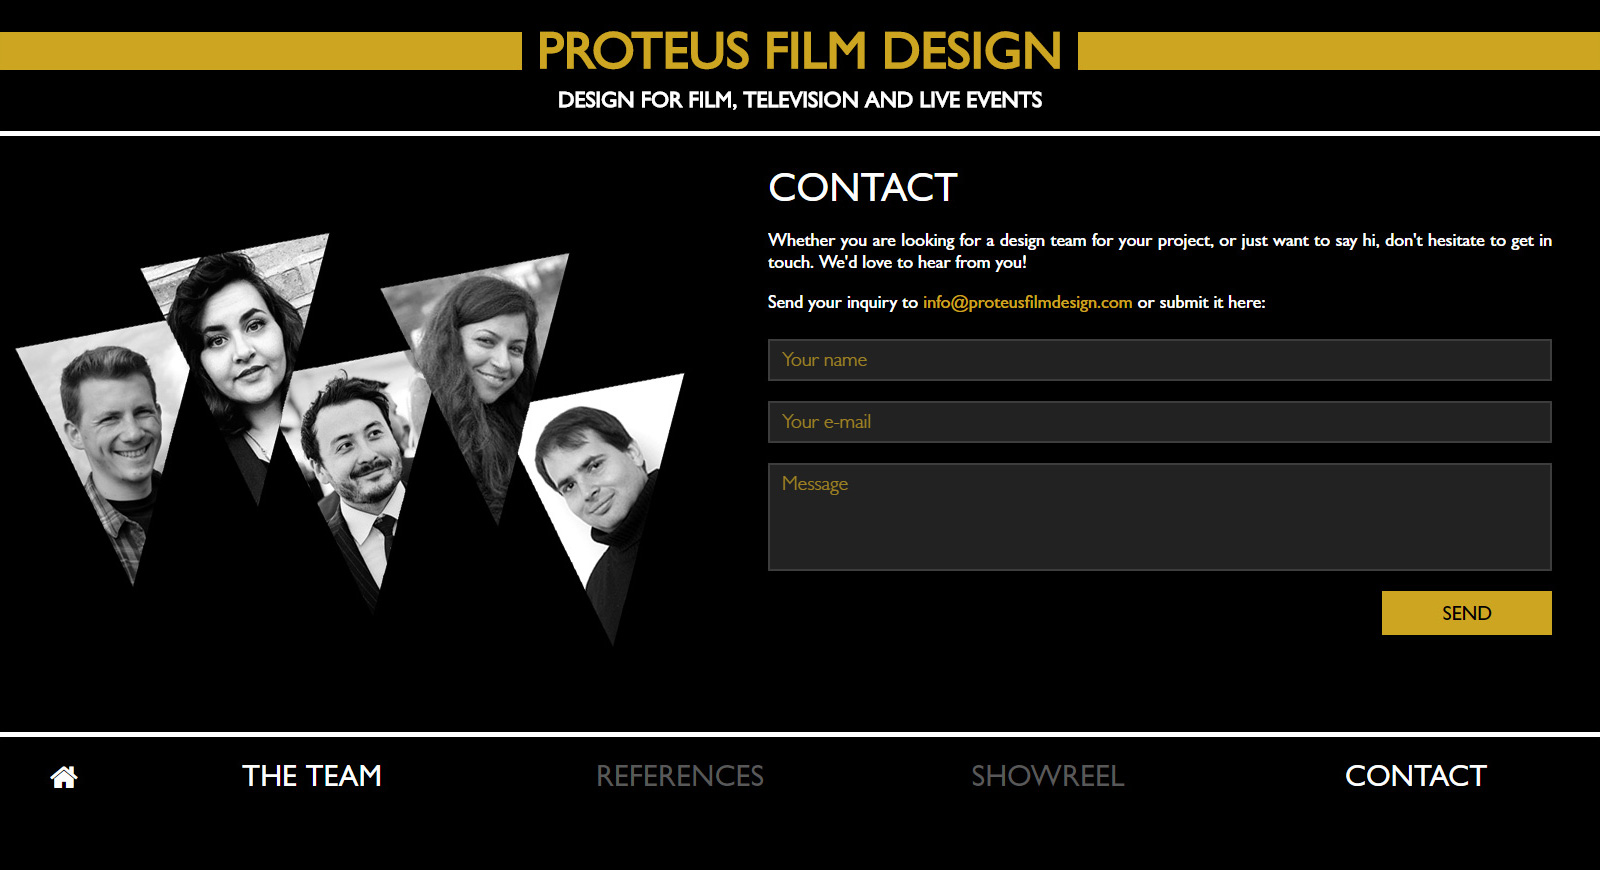 Proteus Film Design team weboldala 4